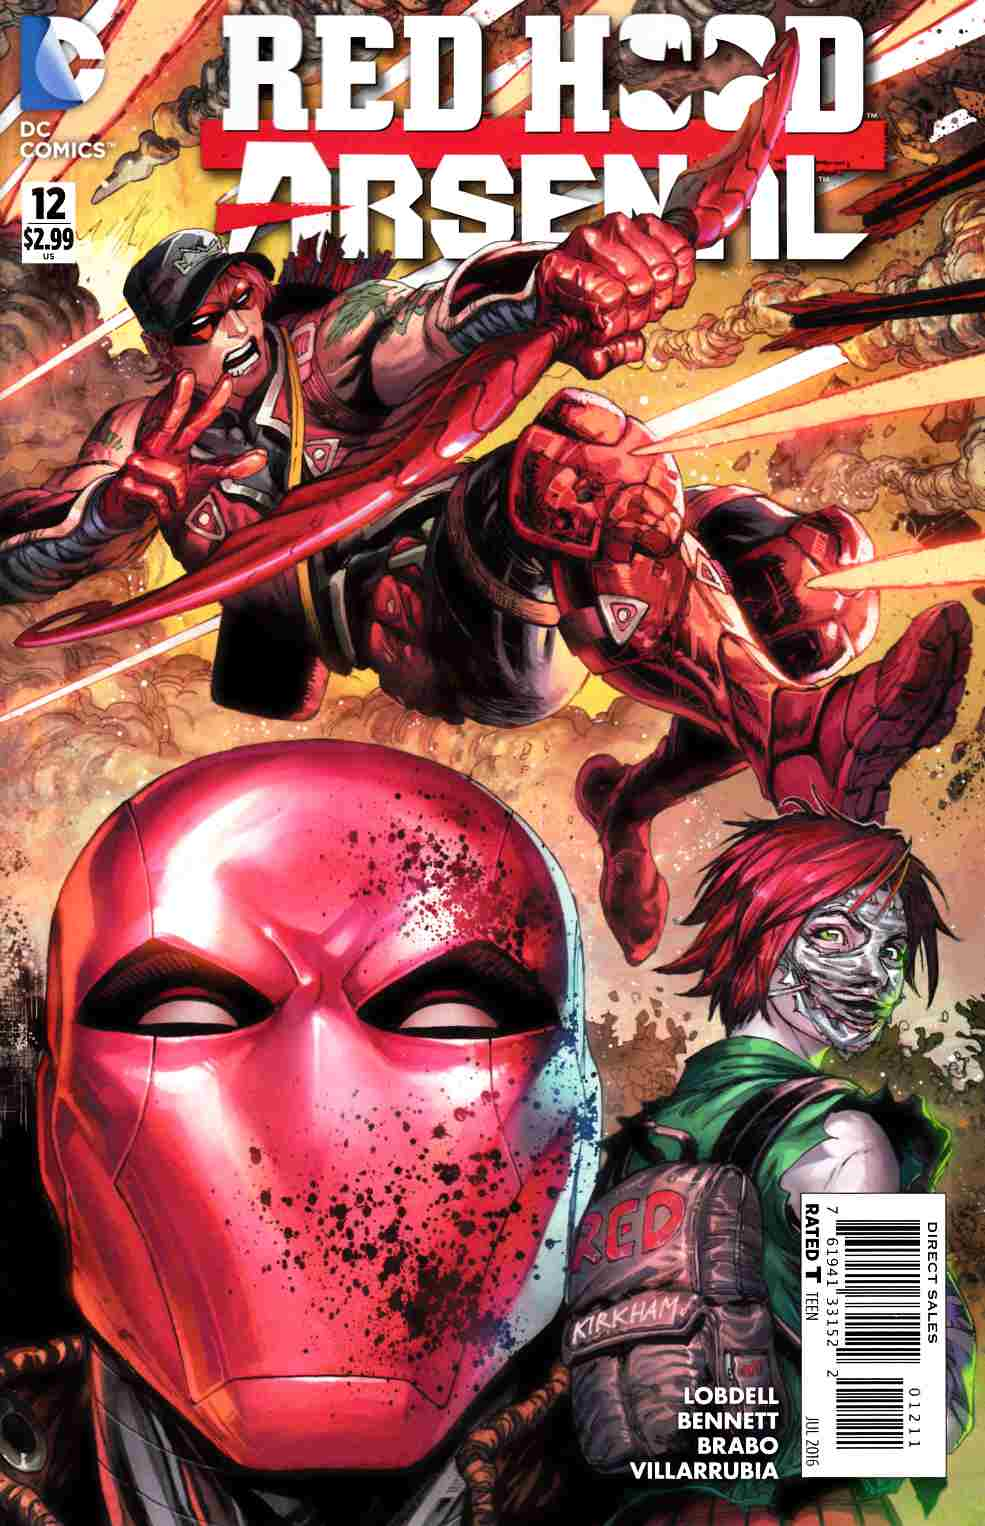 Red Hood Arsenal #12 [DC Comic] THUMBNAIL